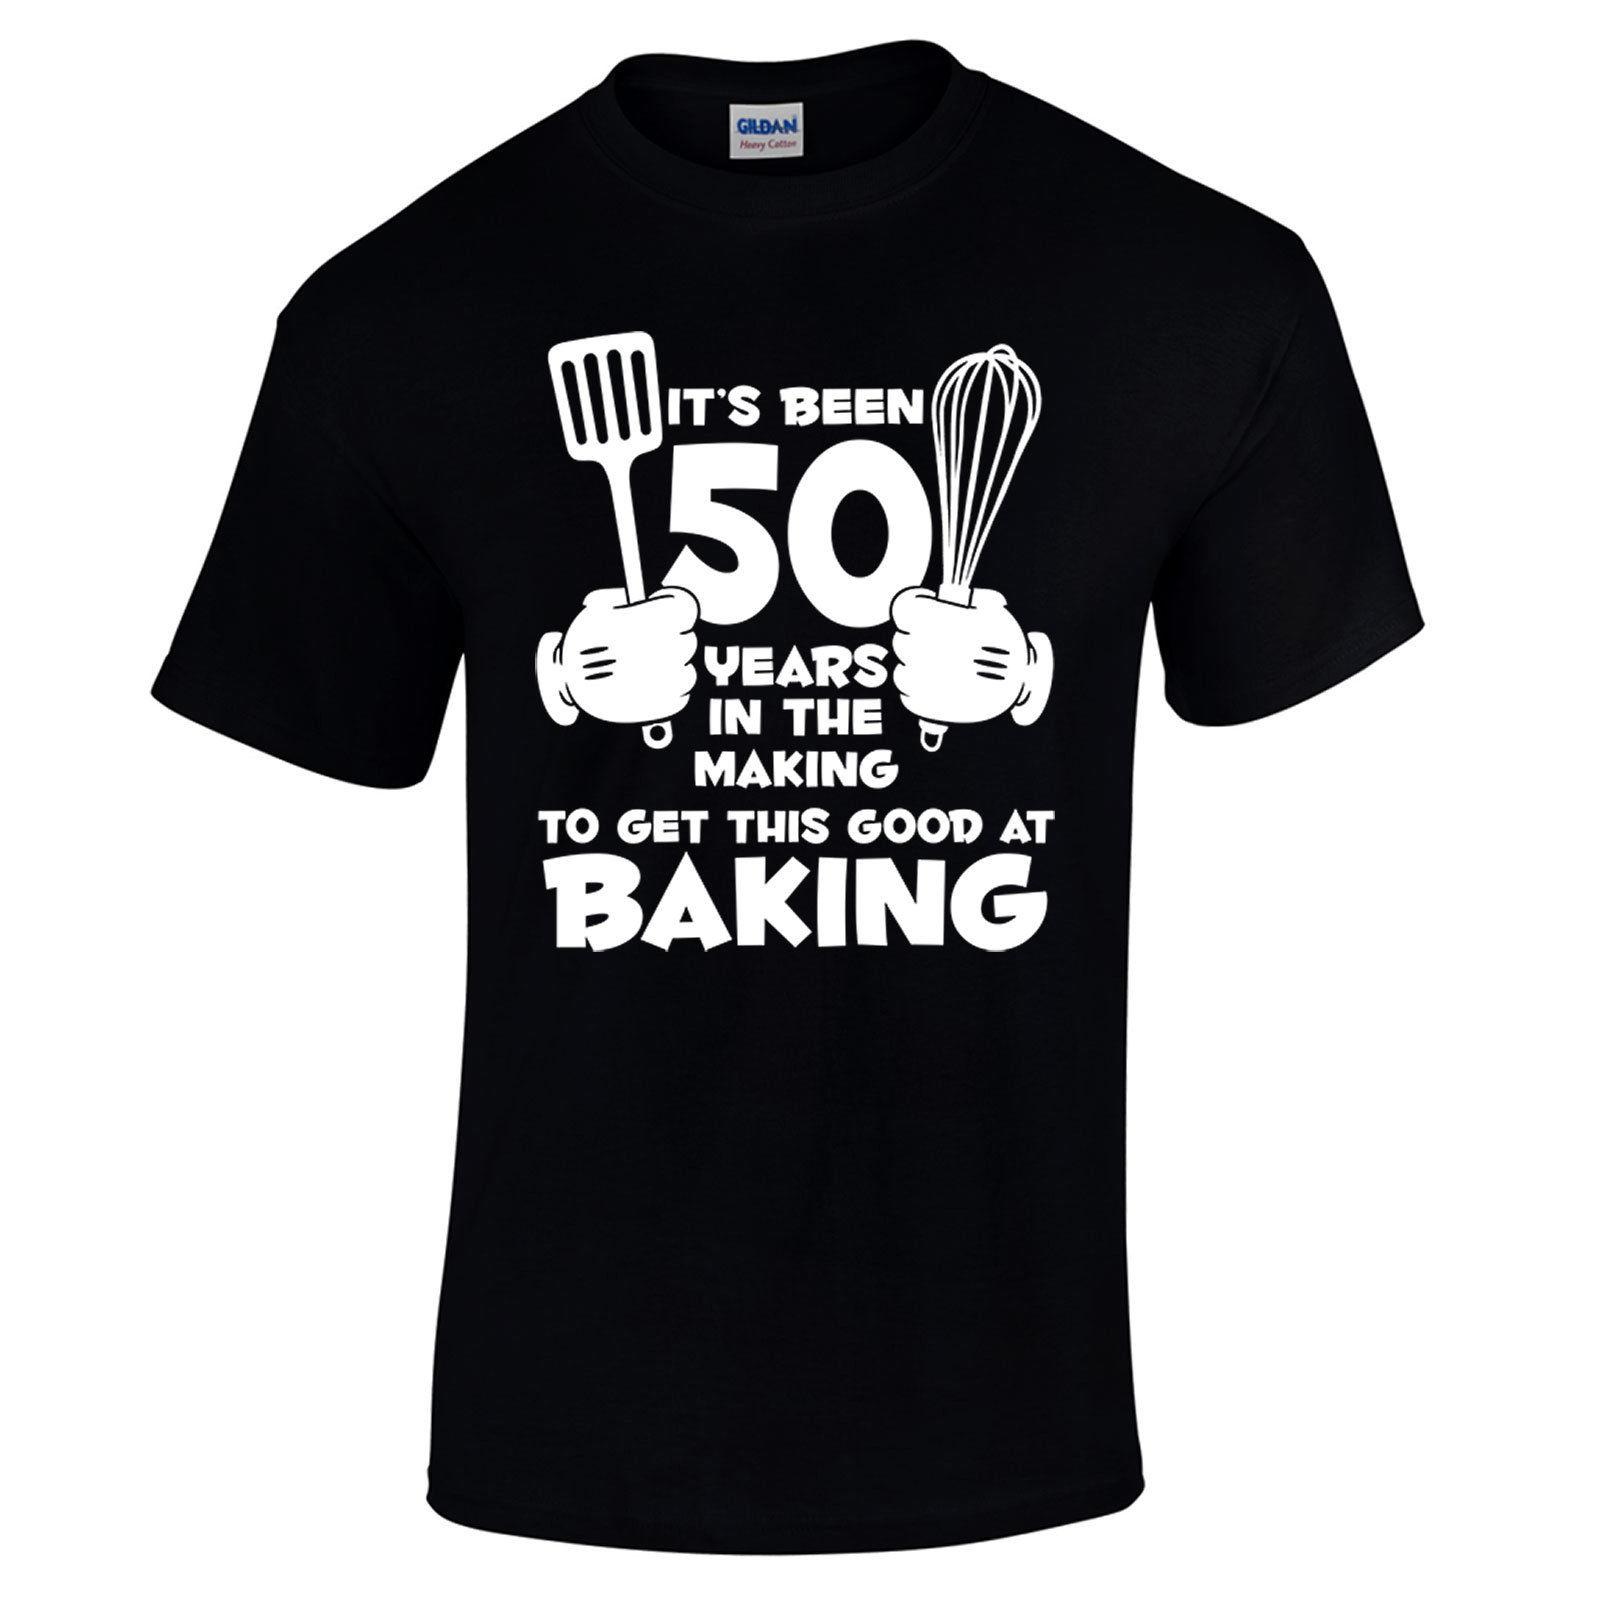 50th Birthday Gifts For Him Mens Novelty T Shirt Its Been 50 Years In The Baking Cool Casual Pride Men Unisex New Companies 24 Hour